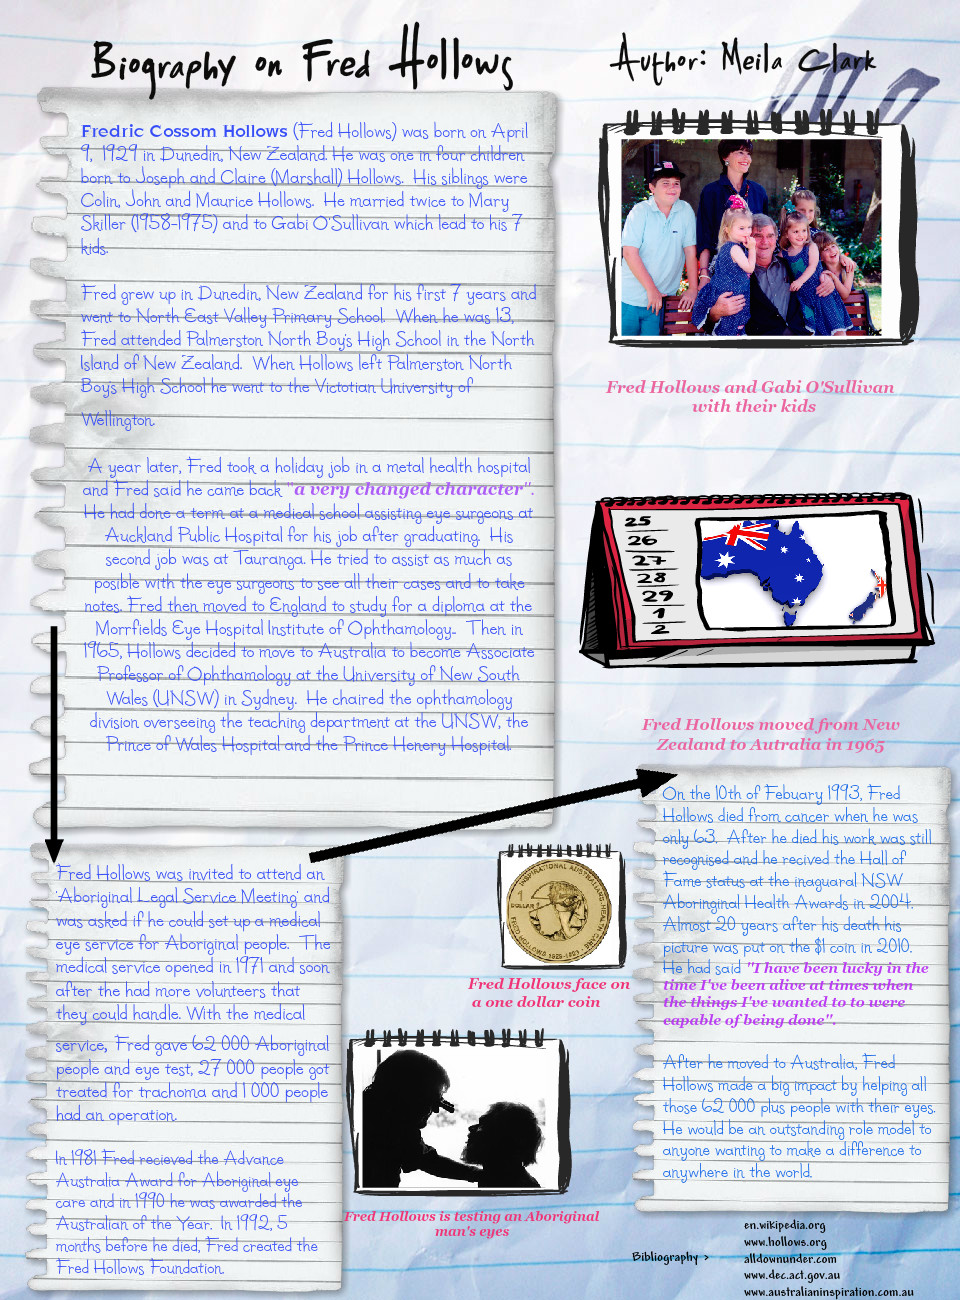 Biography on Fred Hollows